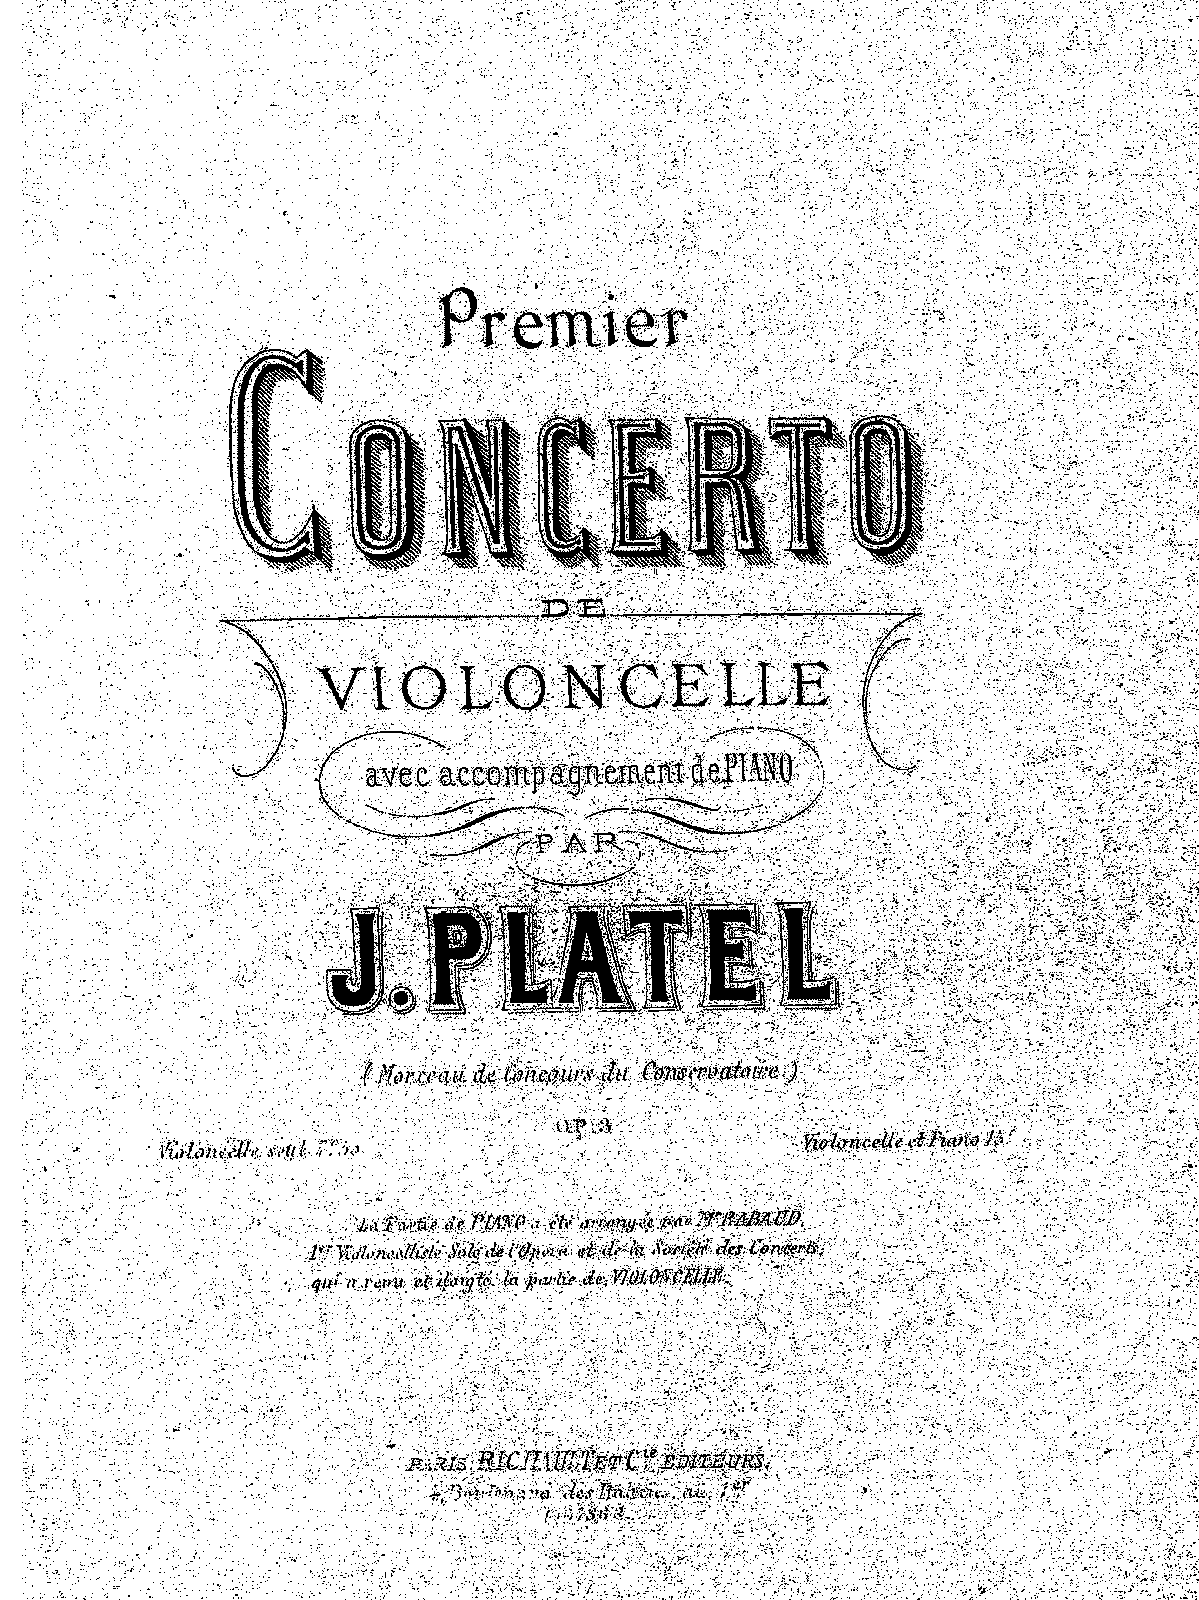 PMLP151358-Platel - Cello Concerto No1 Op3 (Rabaud) cello and piano PNO.pdf